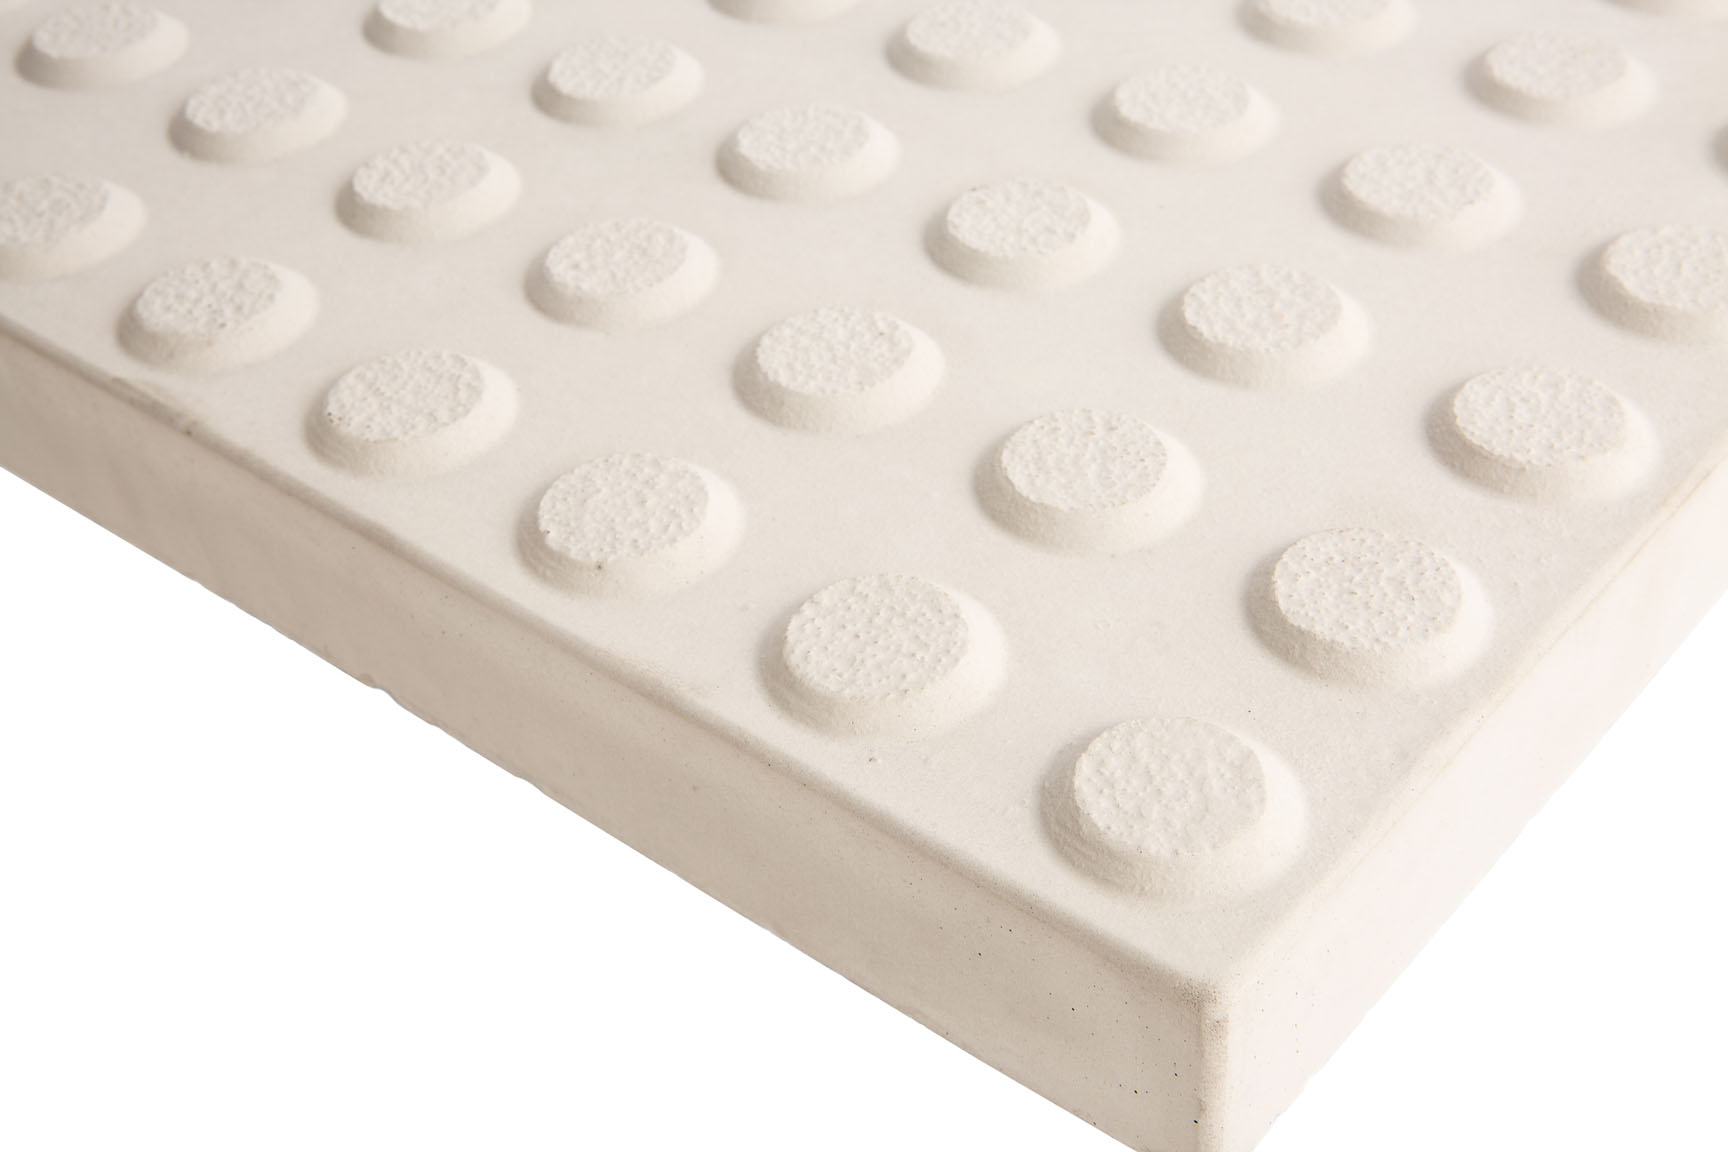 PTCPW400 CREAM PAVER WARNING TACTILES 400x400